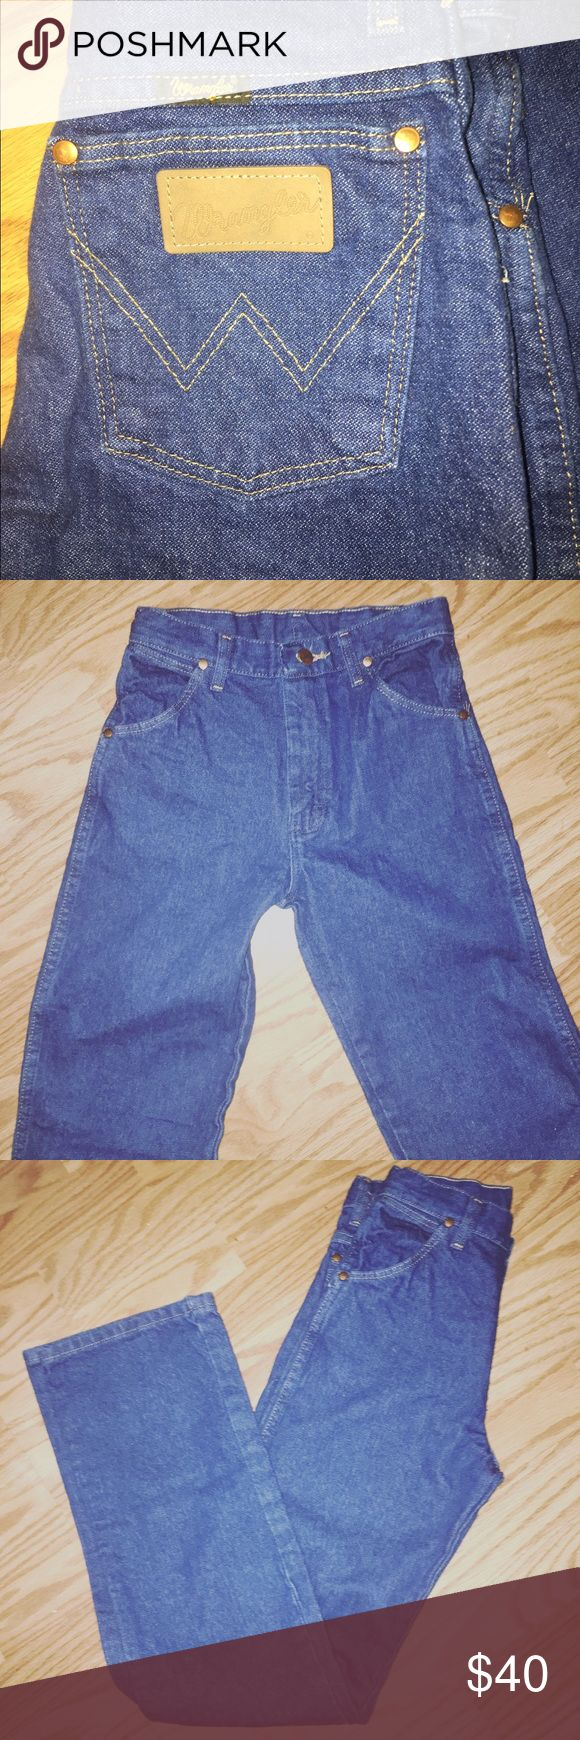 Wranglers high rise & slim jeans Original wranglers. Stretch to these pants size 2/4 Wrangler Jeans Skinny